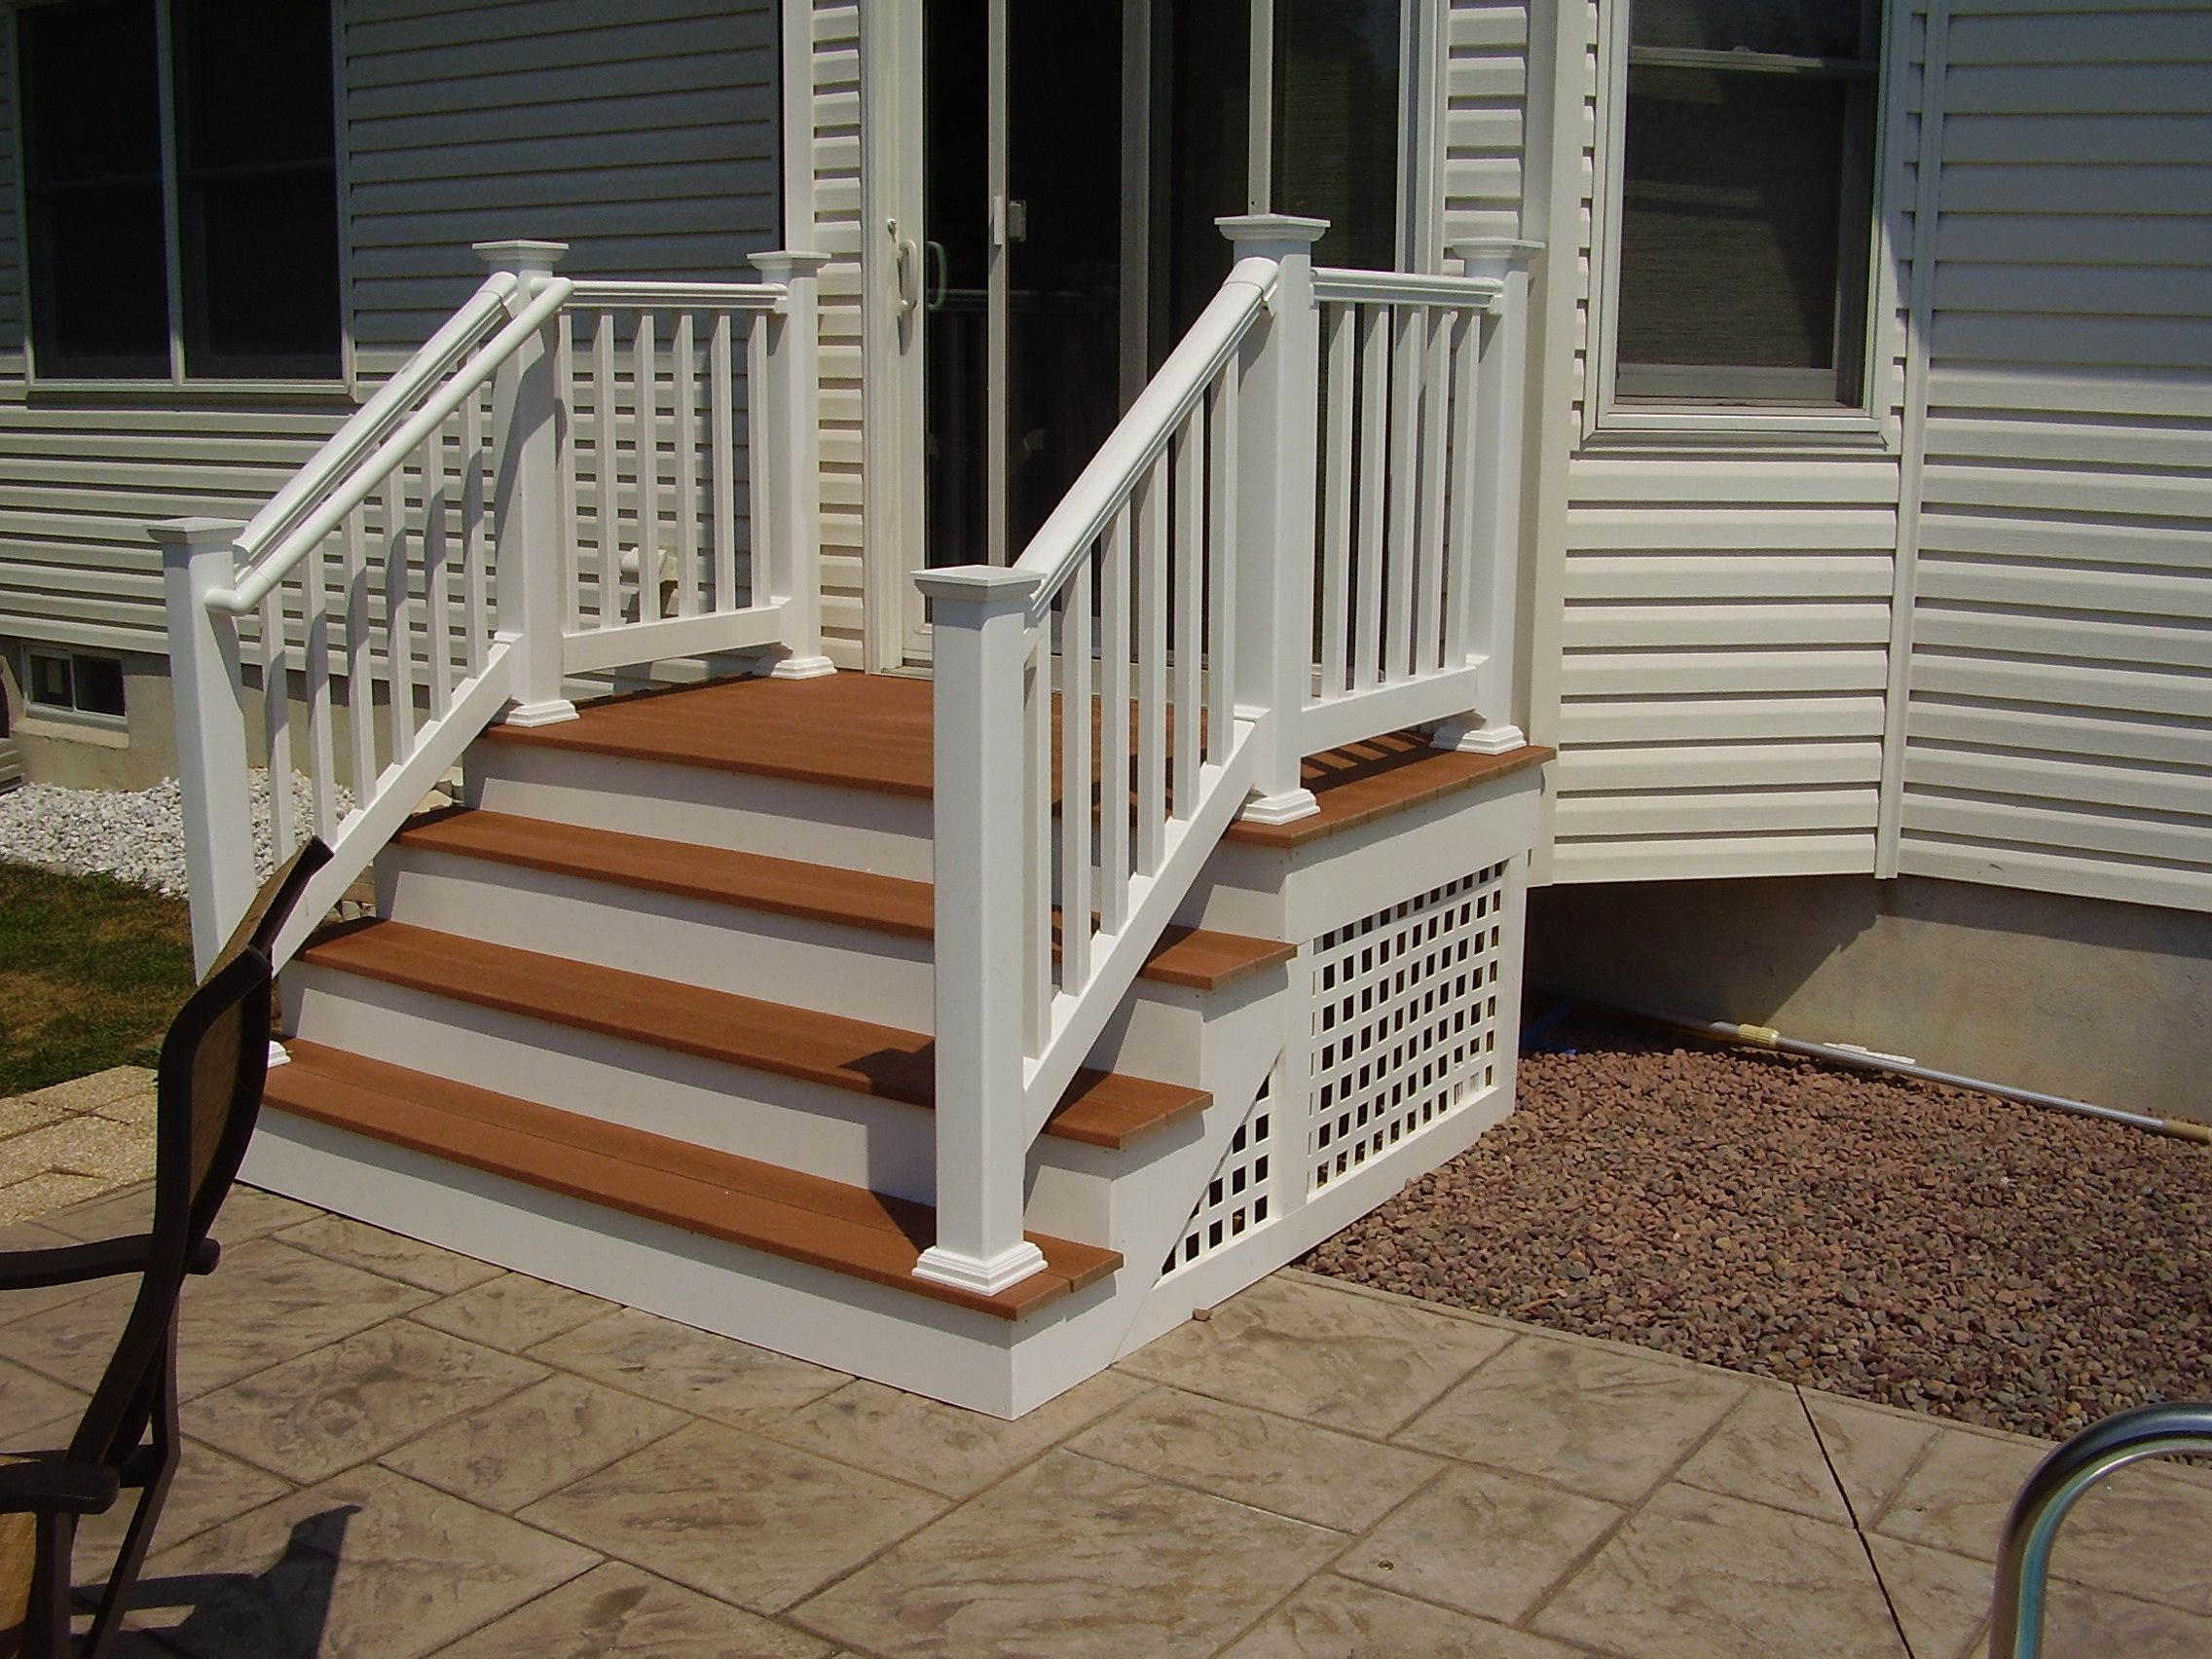 Best Outdoor Steps On Porch With Railing Backyard Nj Carl S Fencing Decking And Home Improvements 400 x 300